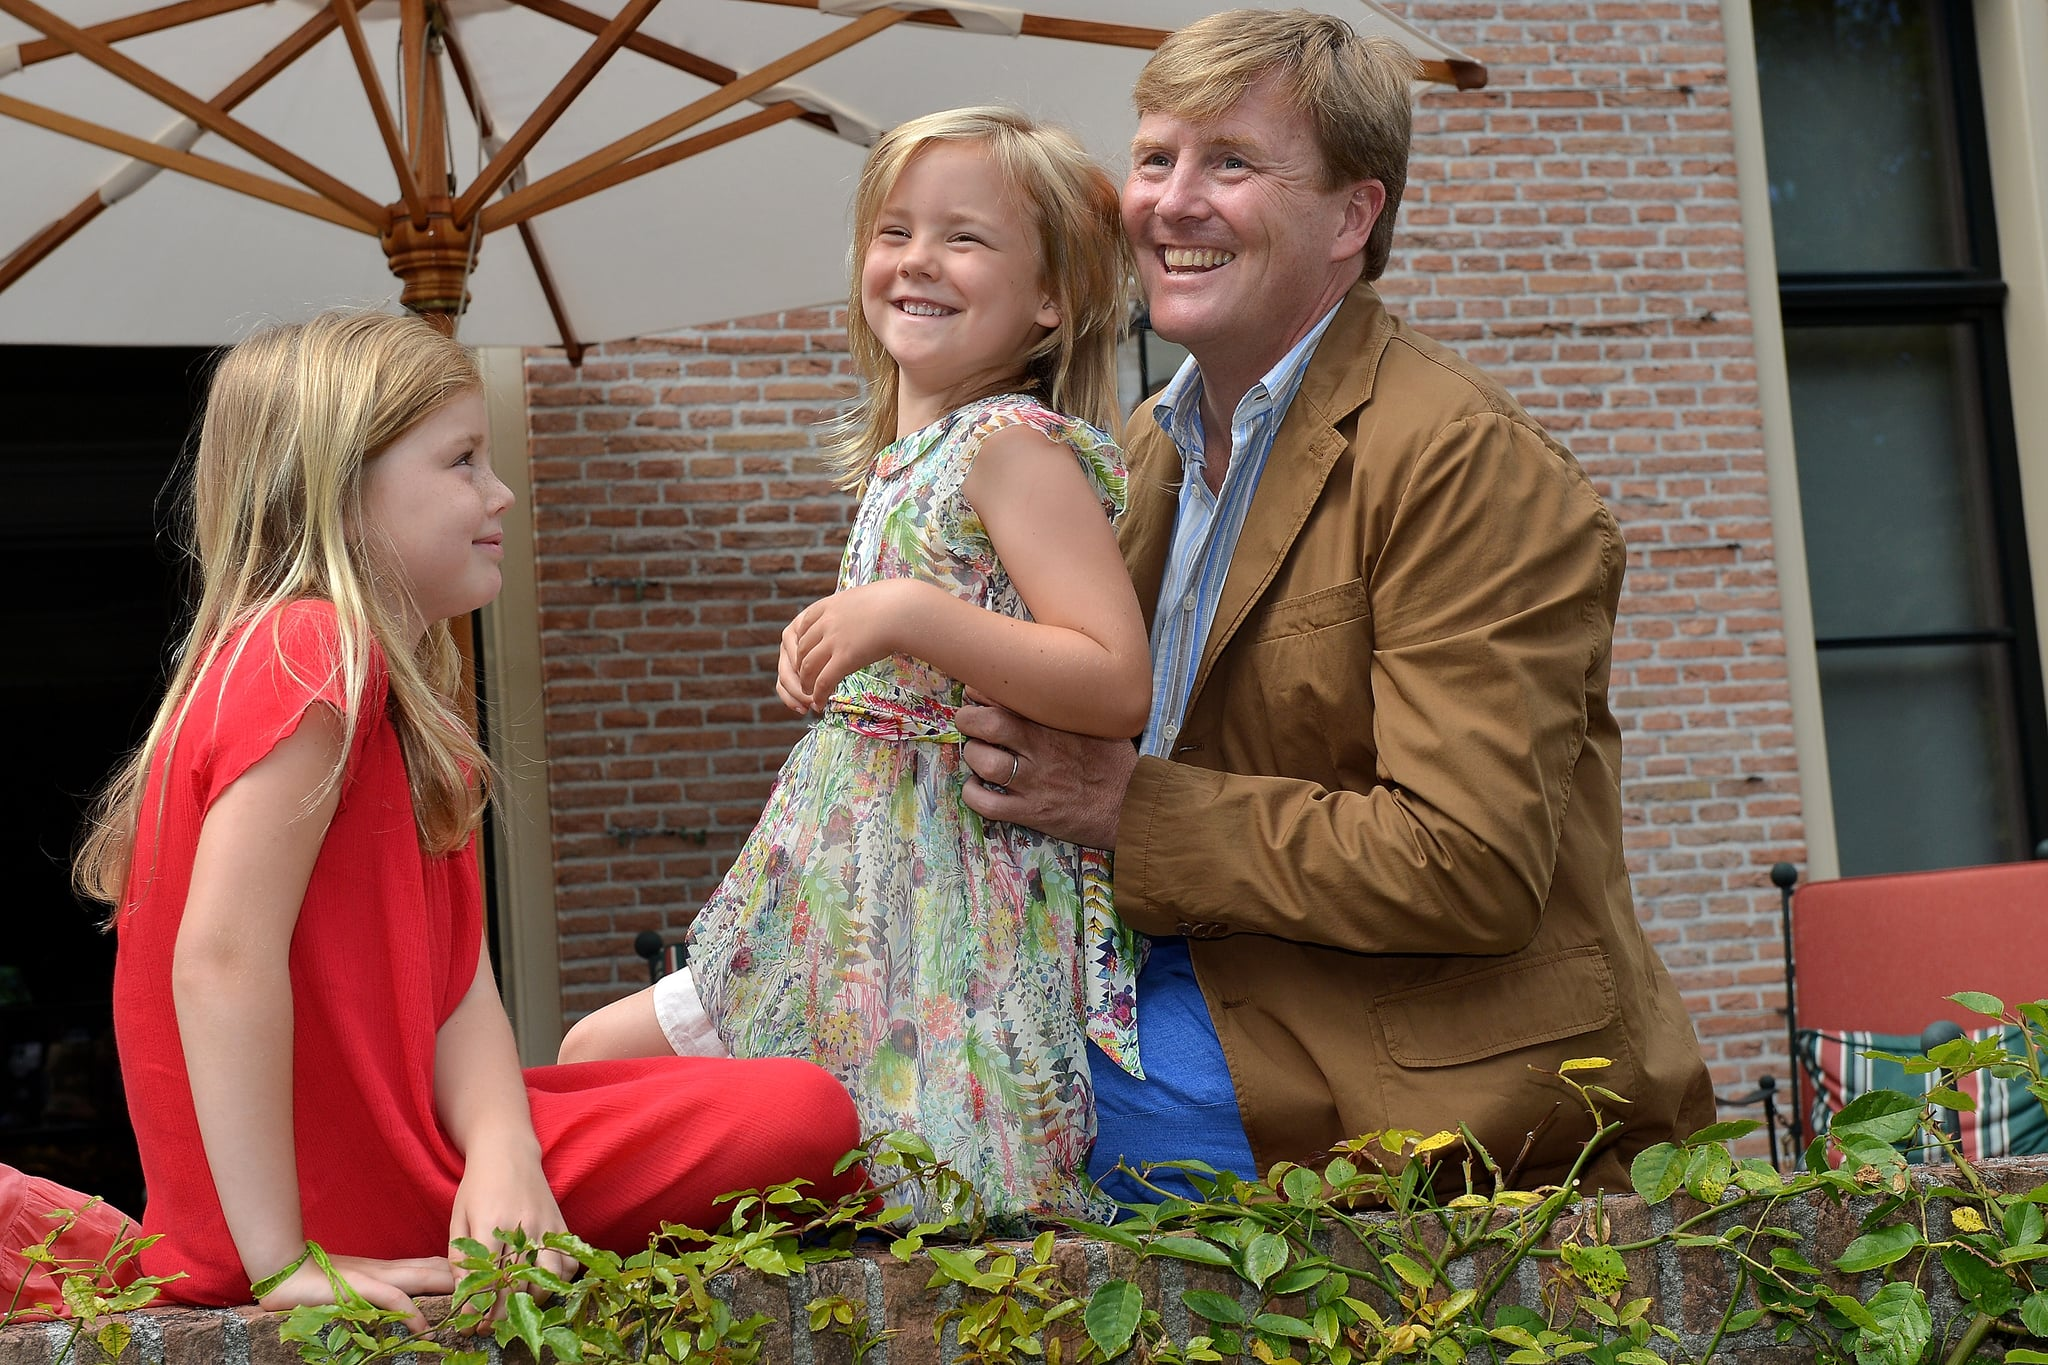 King Willem-Alexander and Princess Alexia laughed during the photocall.